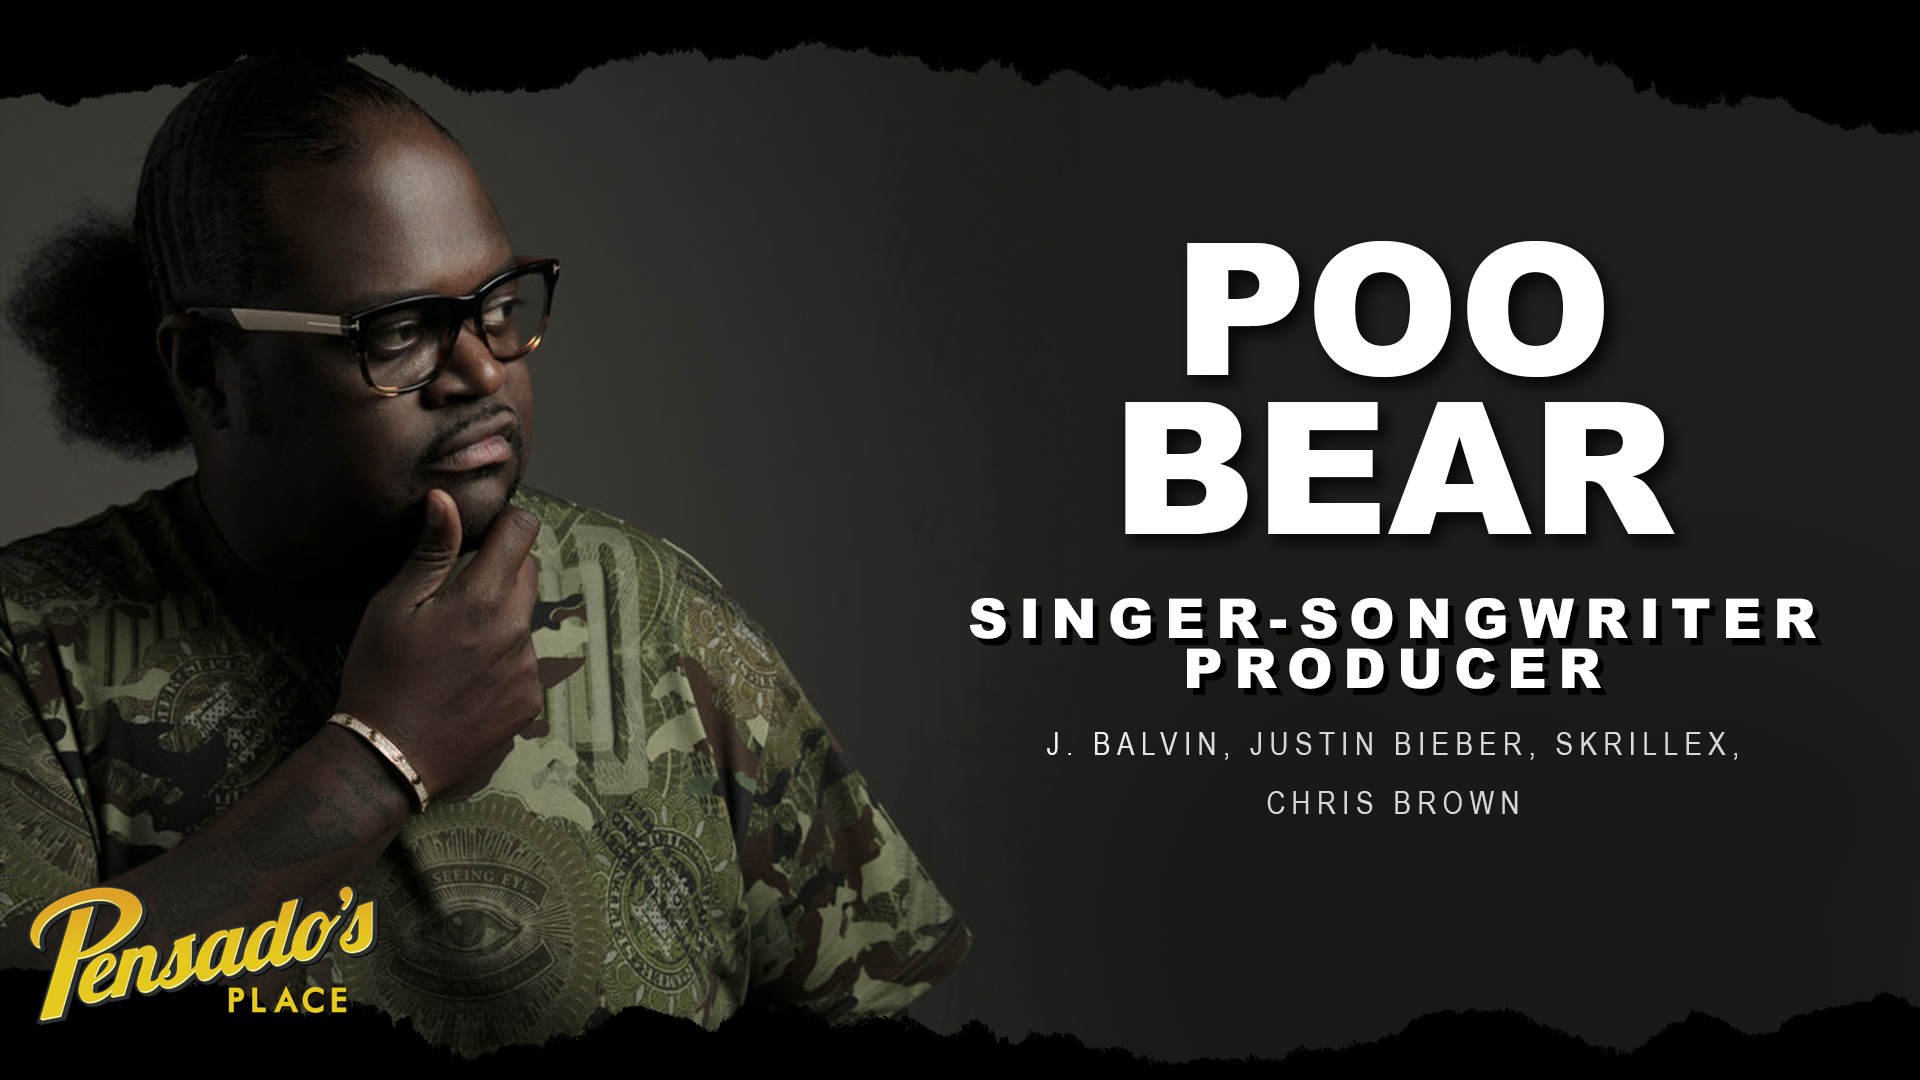 Justin Bieber Songwriter / Producer, Poo Bear